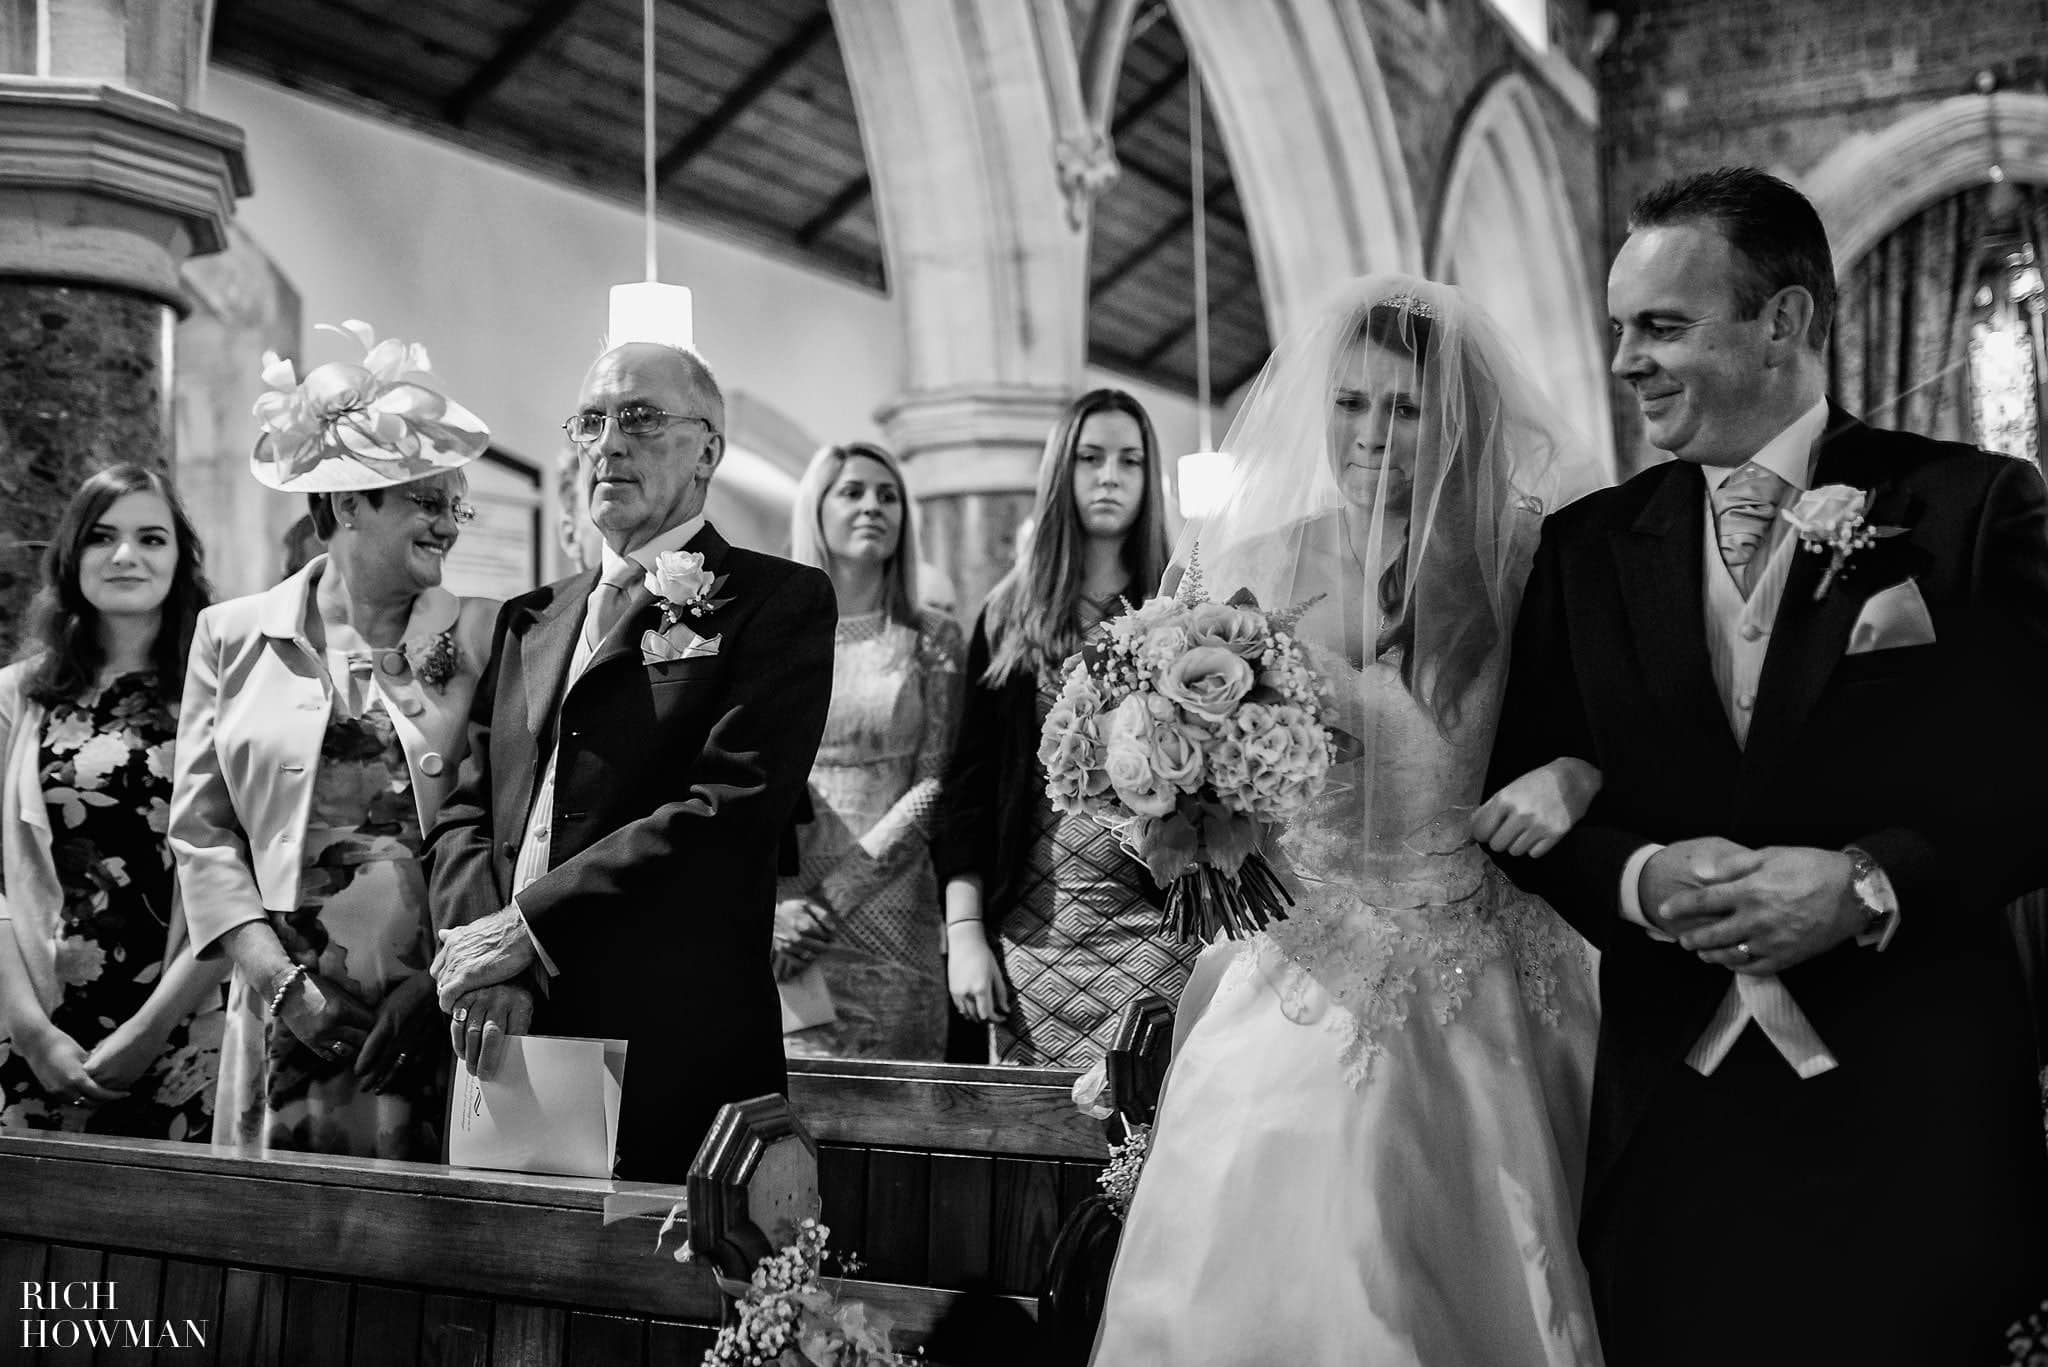 Documentary wedding photo of the bride walking up the aisle in church to meet her waiting fiancée